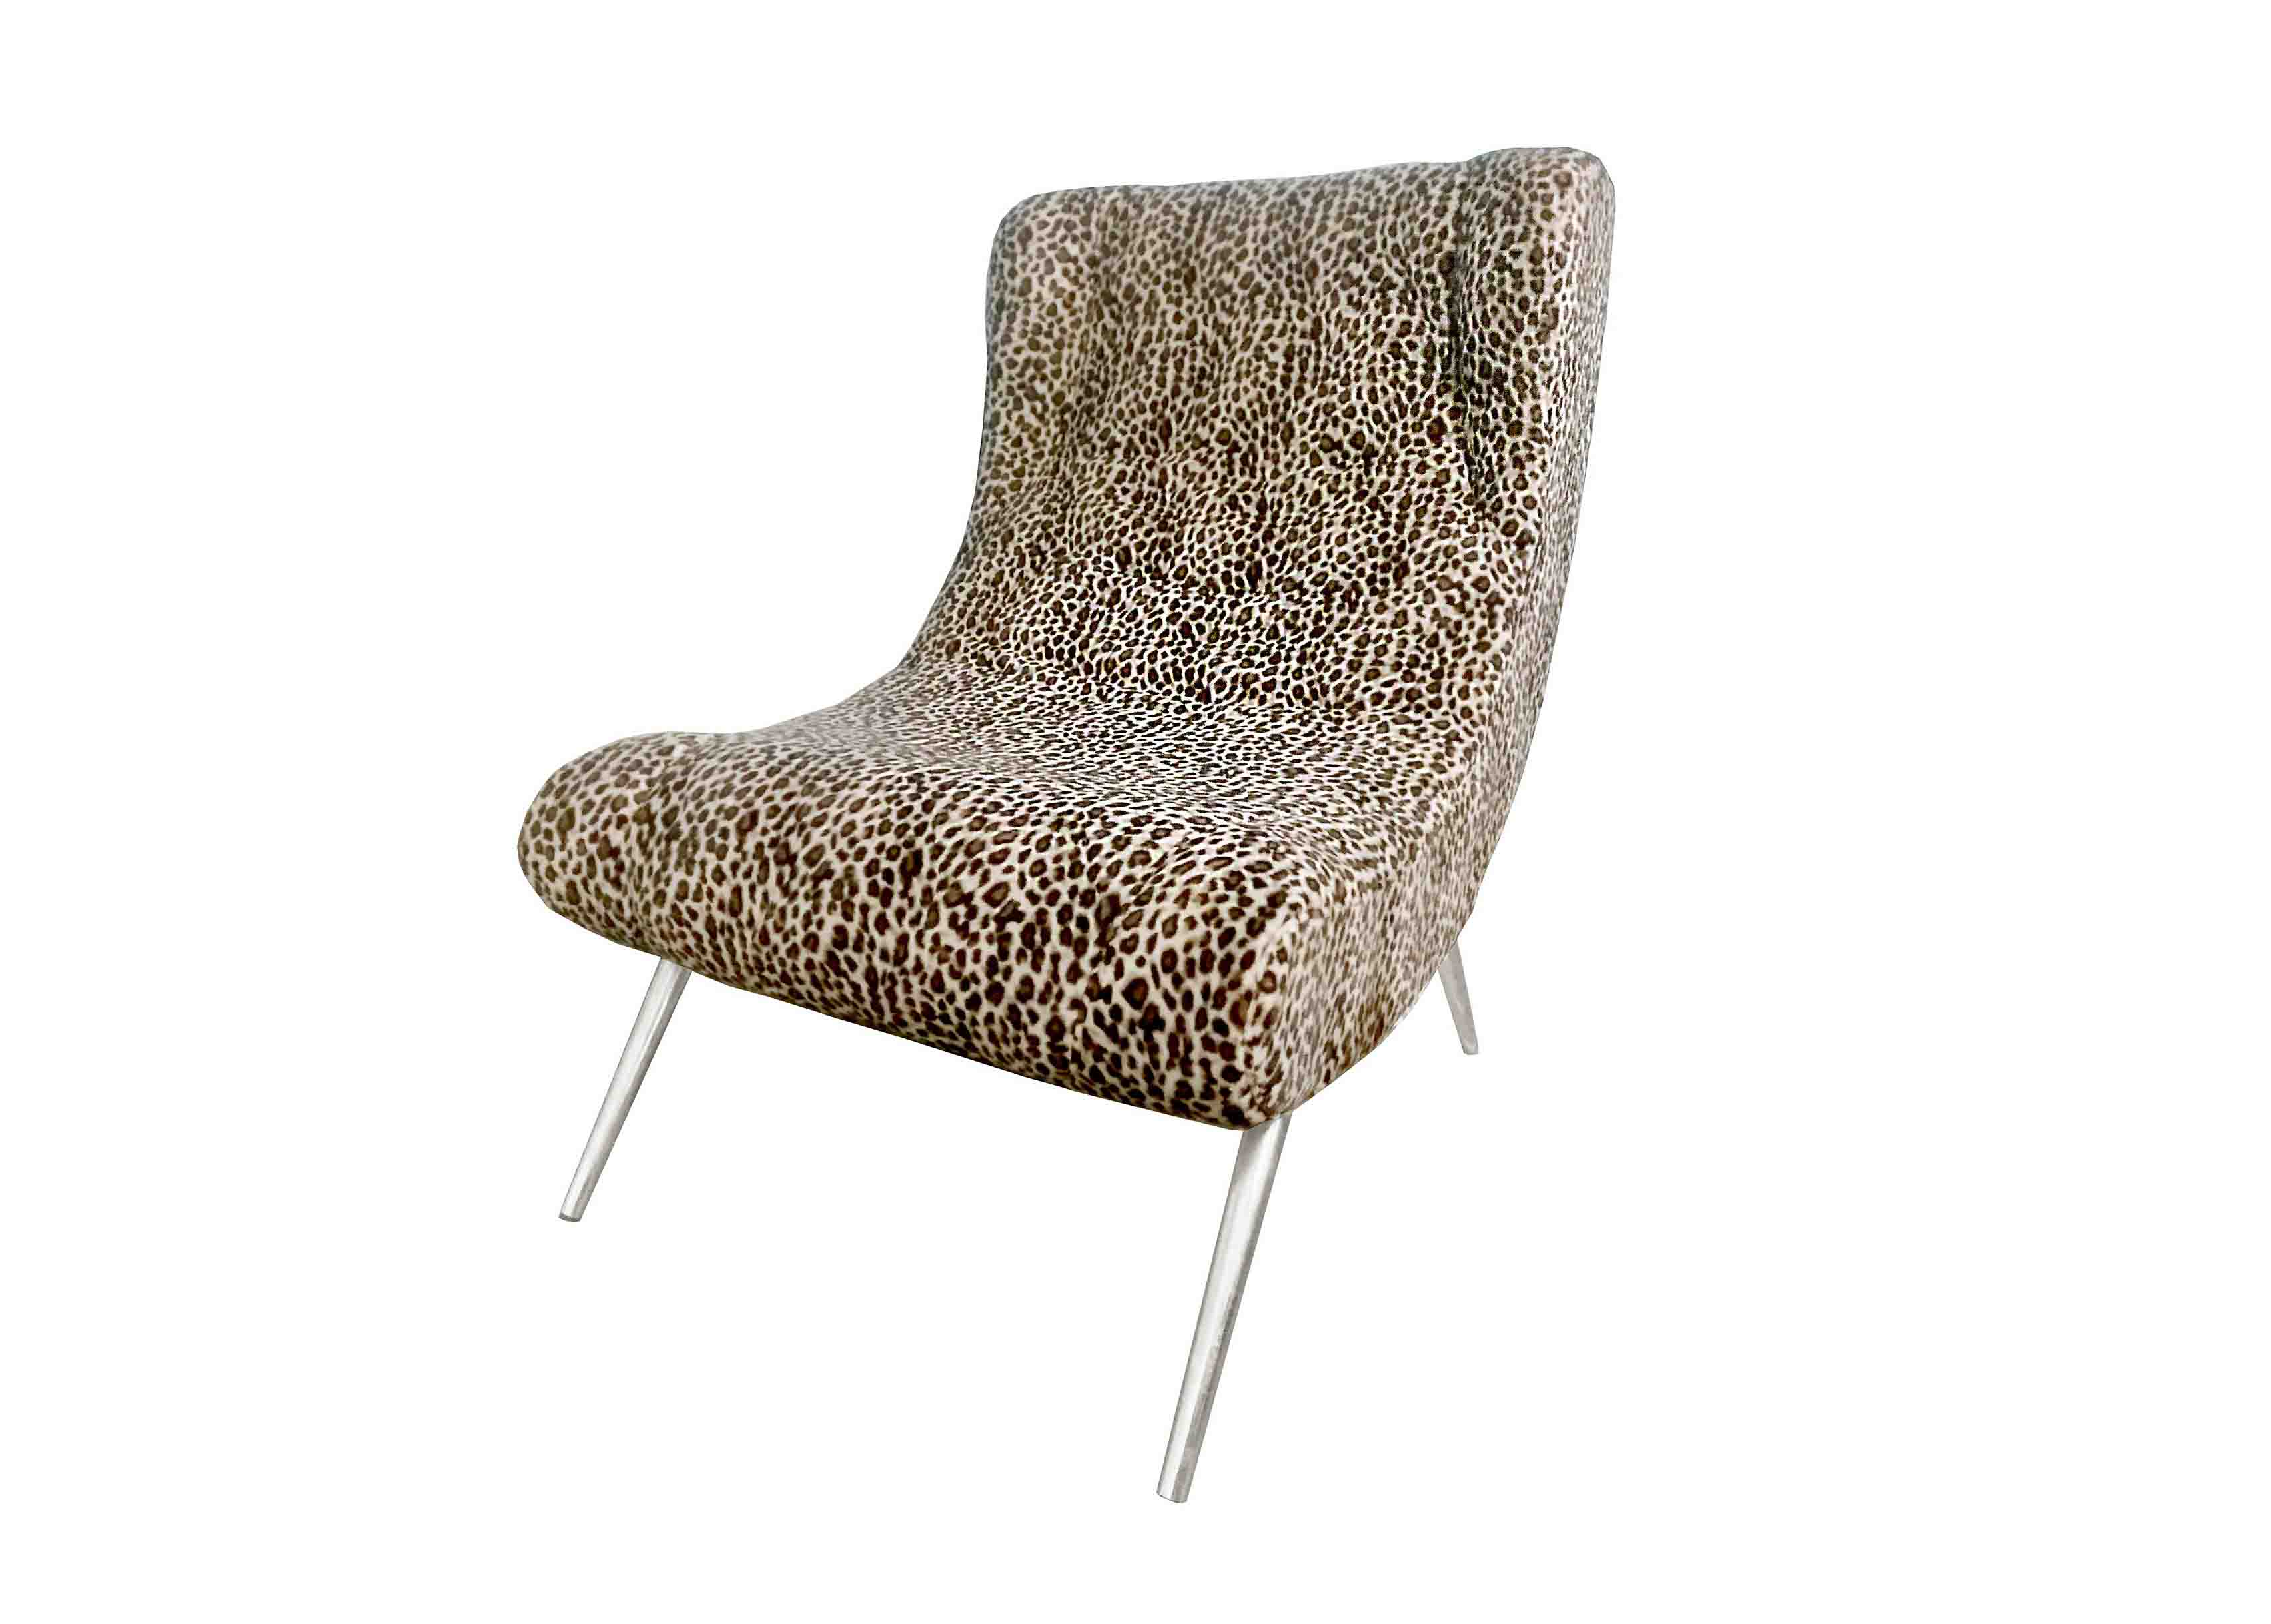 Leopard Accent Chair  sc 1 st  IG Creative & Leopard Accent Chair - IG Creative